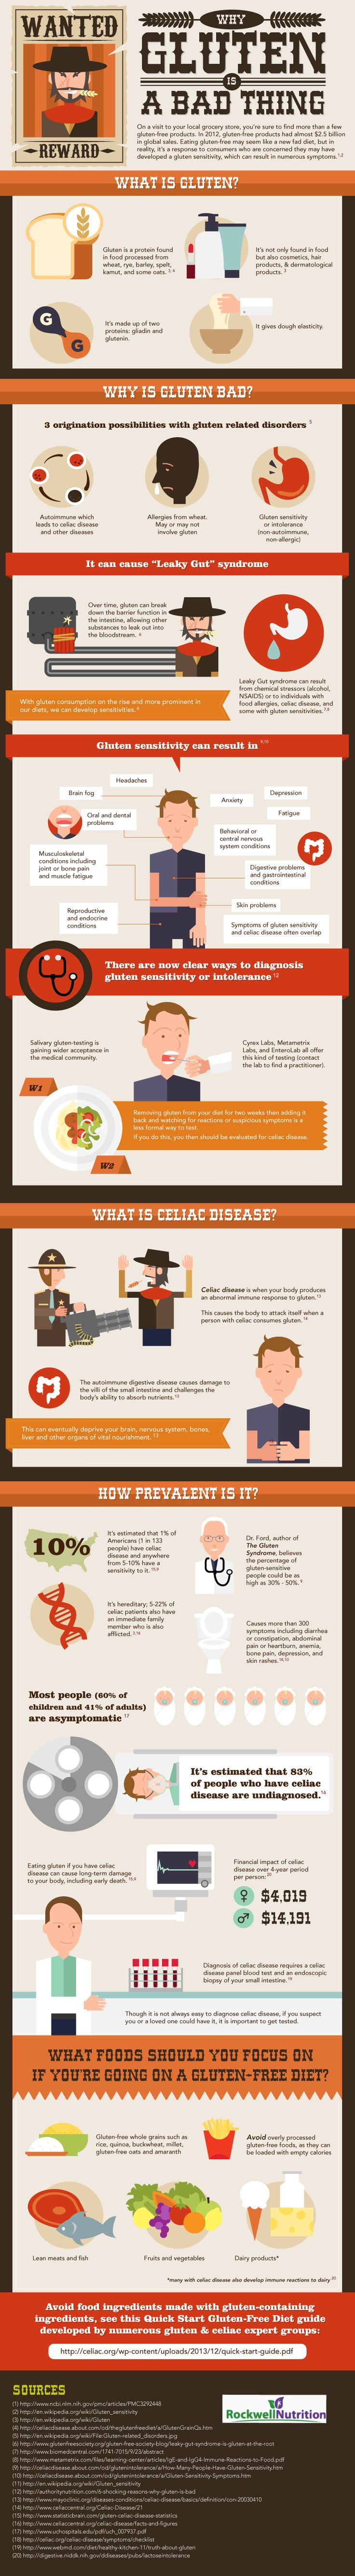 why gluten is a bad thing infographic.  i need to add: for some people.  (not all suffer when eating gluten! lucky bastards.)